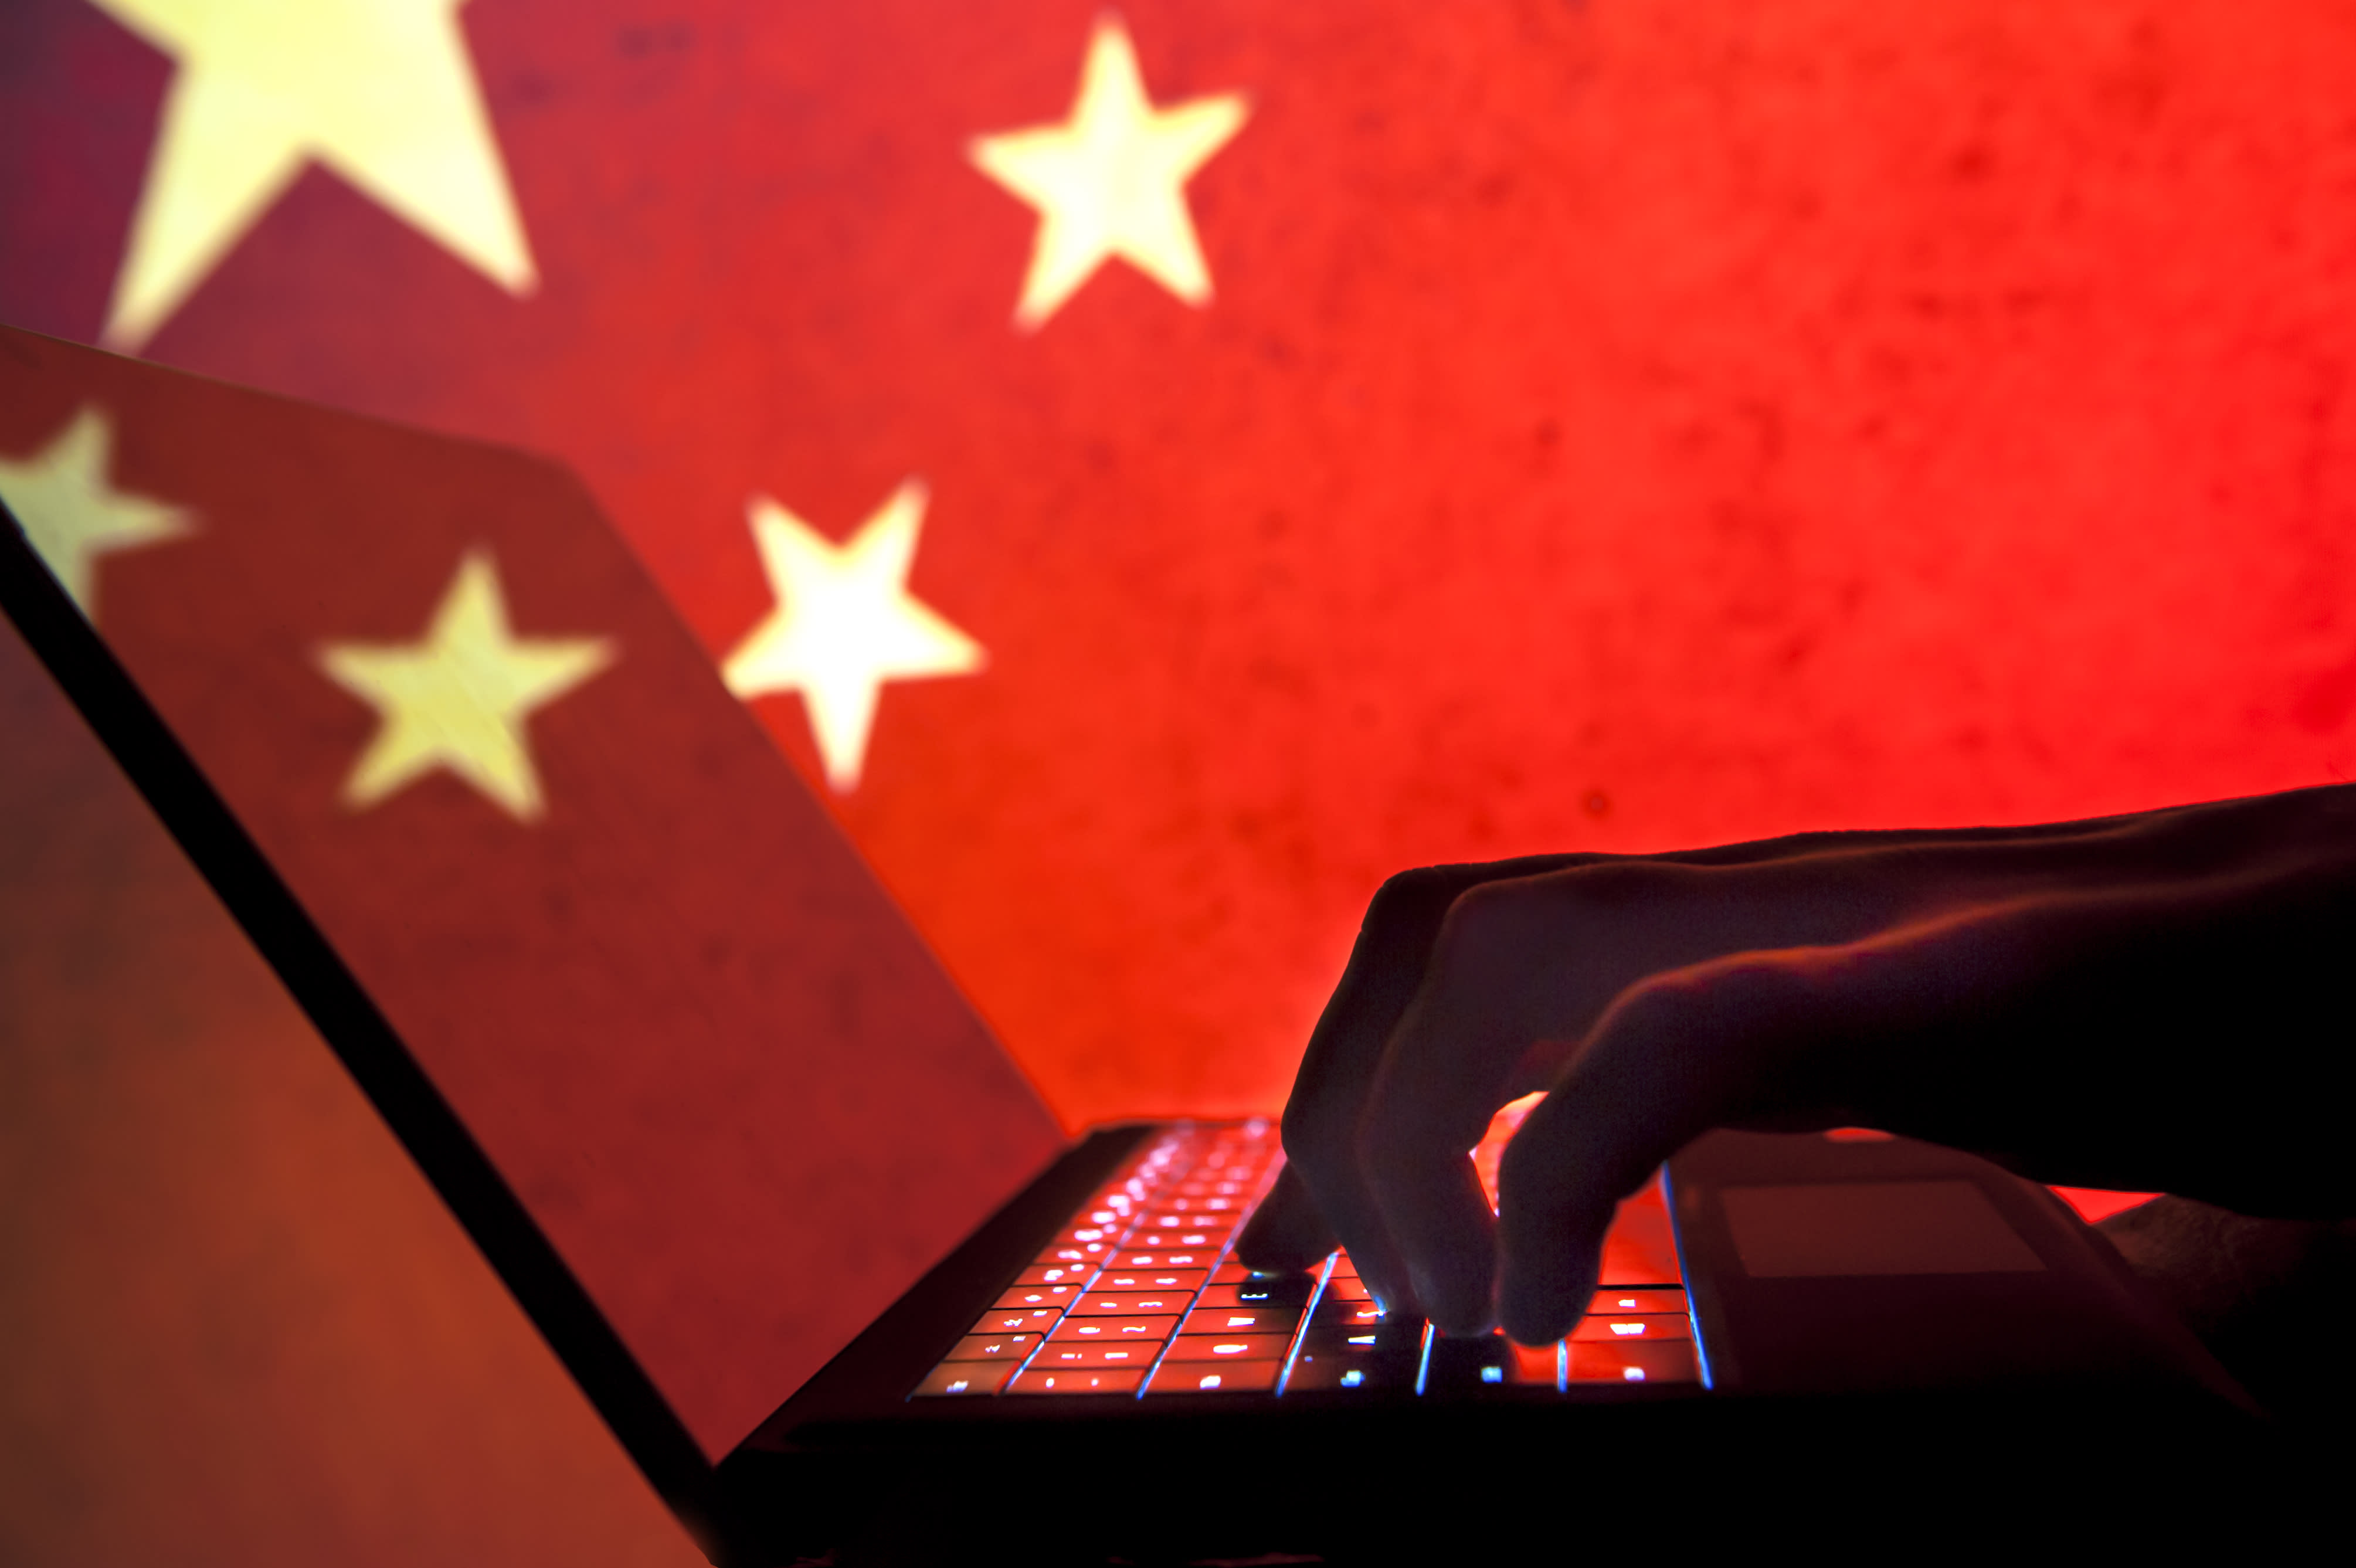 China-backed hackers stole text messages and phone records in push for intelligence, report says